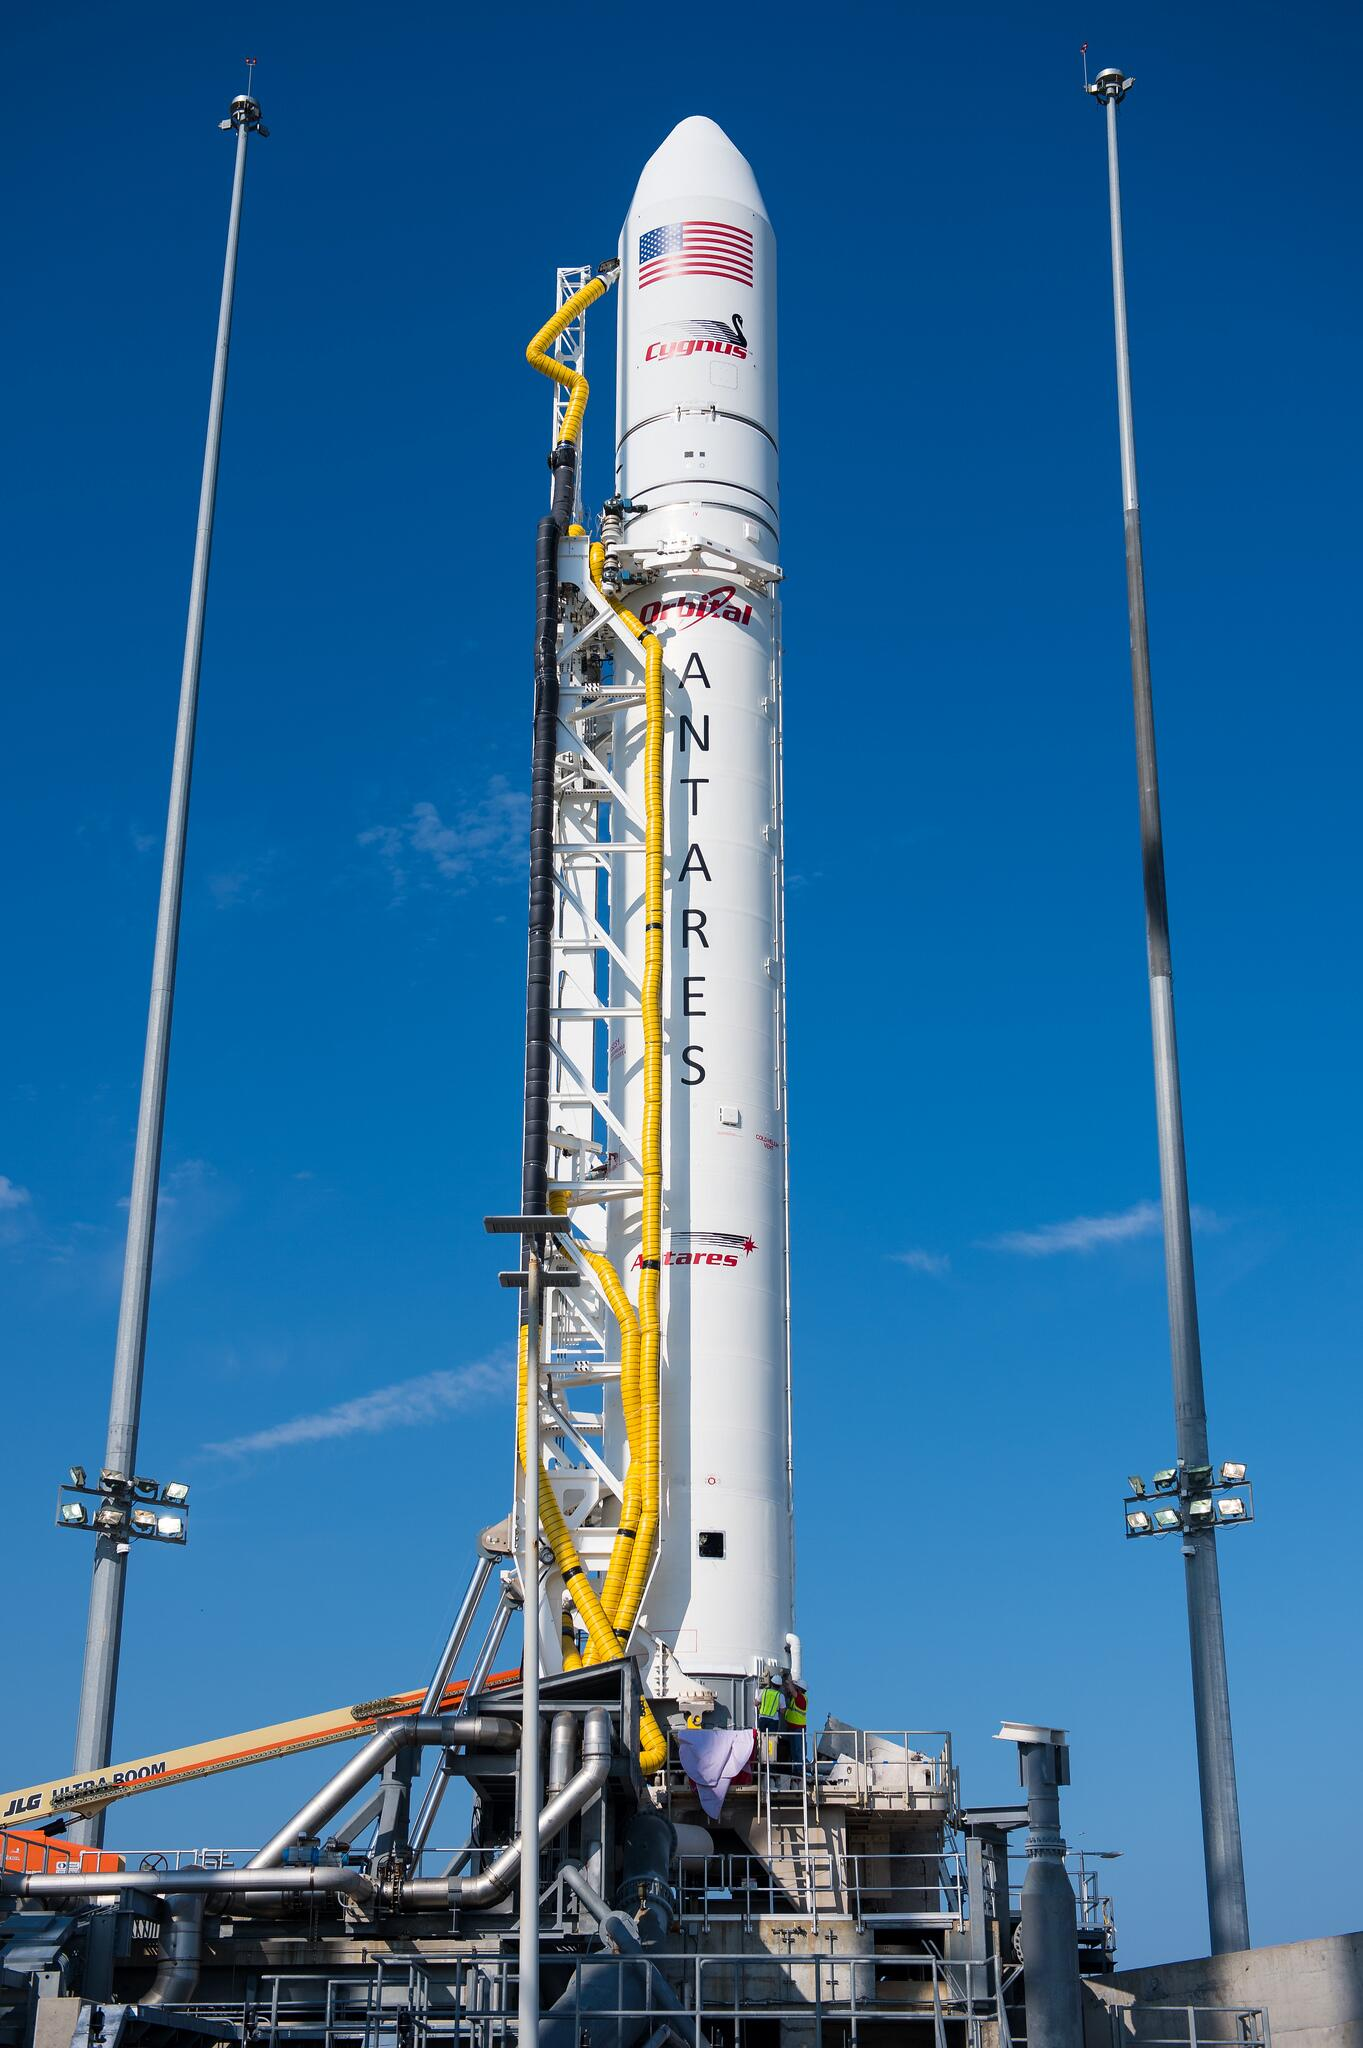 21 mins to launch of #Orb2. #DidYouKnow? The Antares rocket is 131.5 feet tall--about the size of a 13 story building http://t.co/9x3M1vLezg